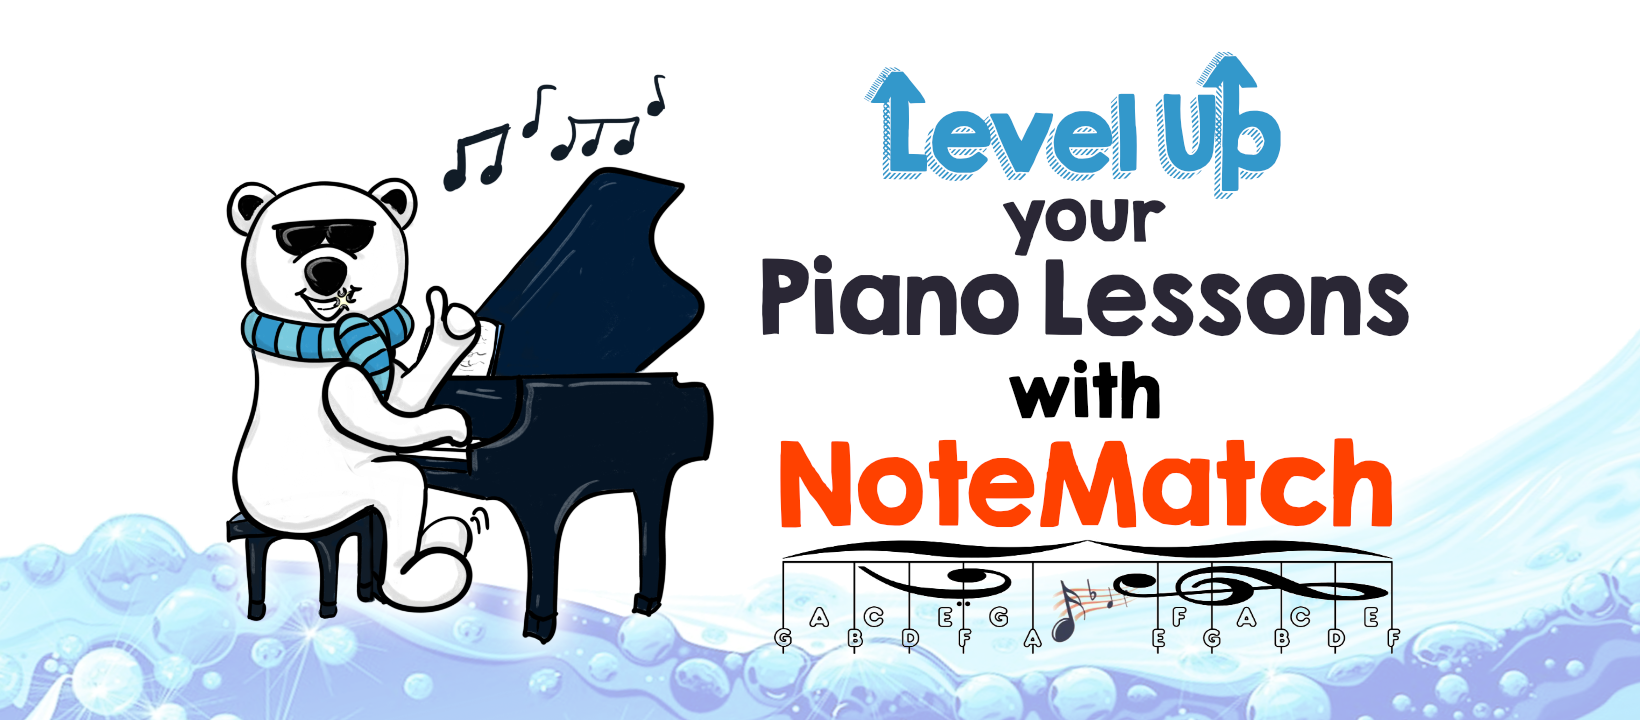 Level Up Your Piano Lessons with Notematch